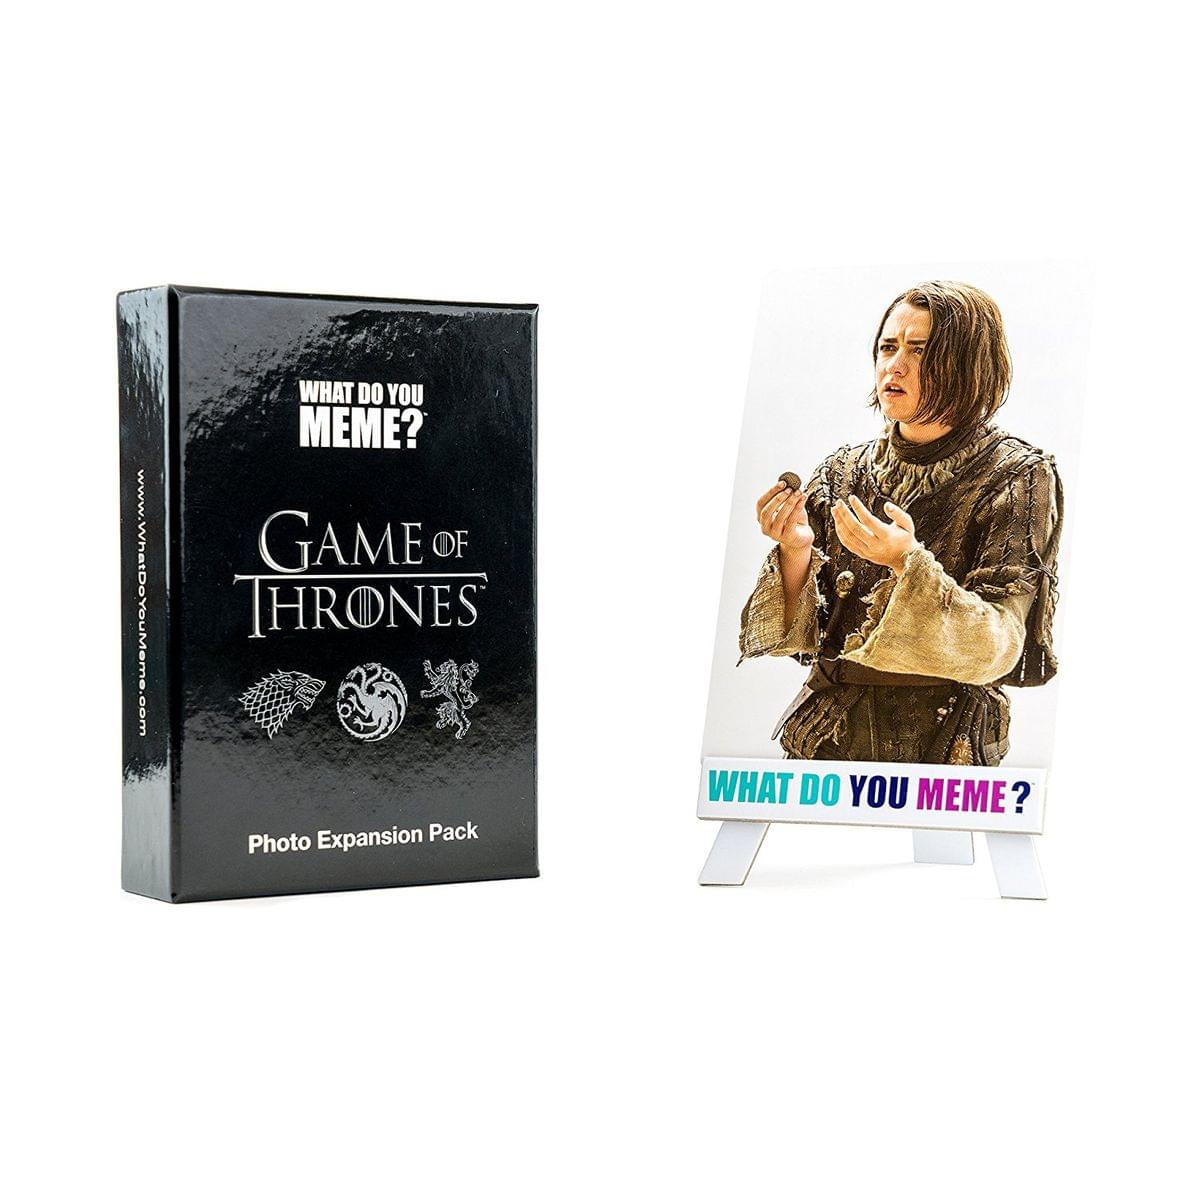 What Do You Meme? Card Game: Game of Thrones Photo Expansion Pack, 75 Cards